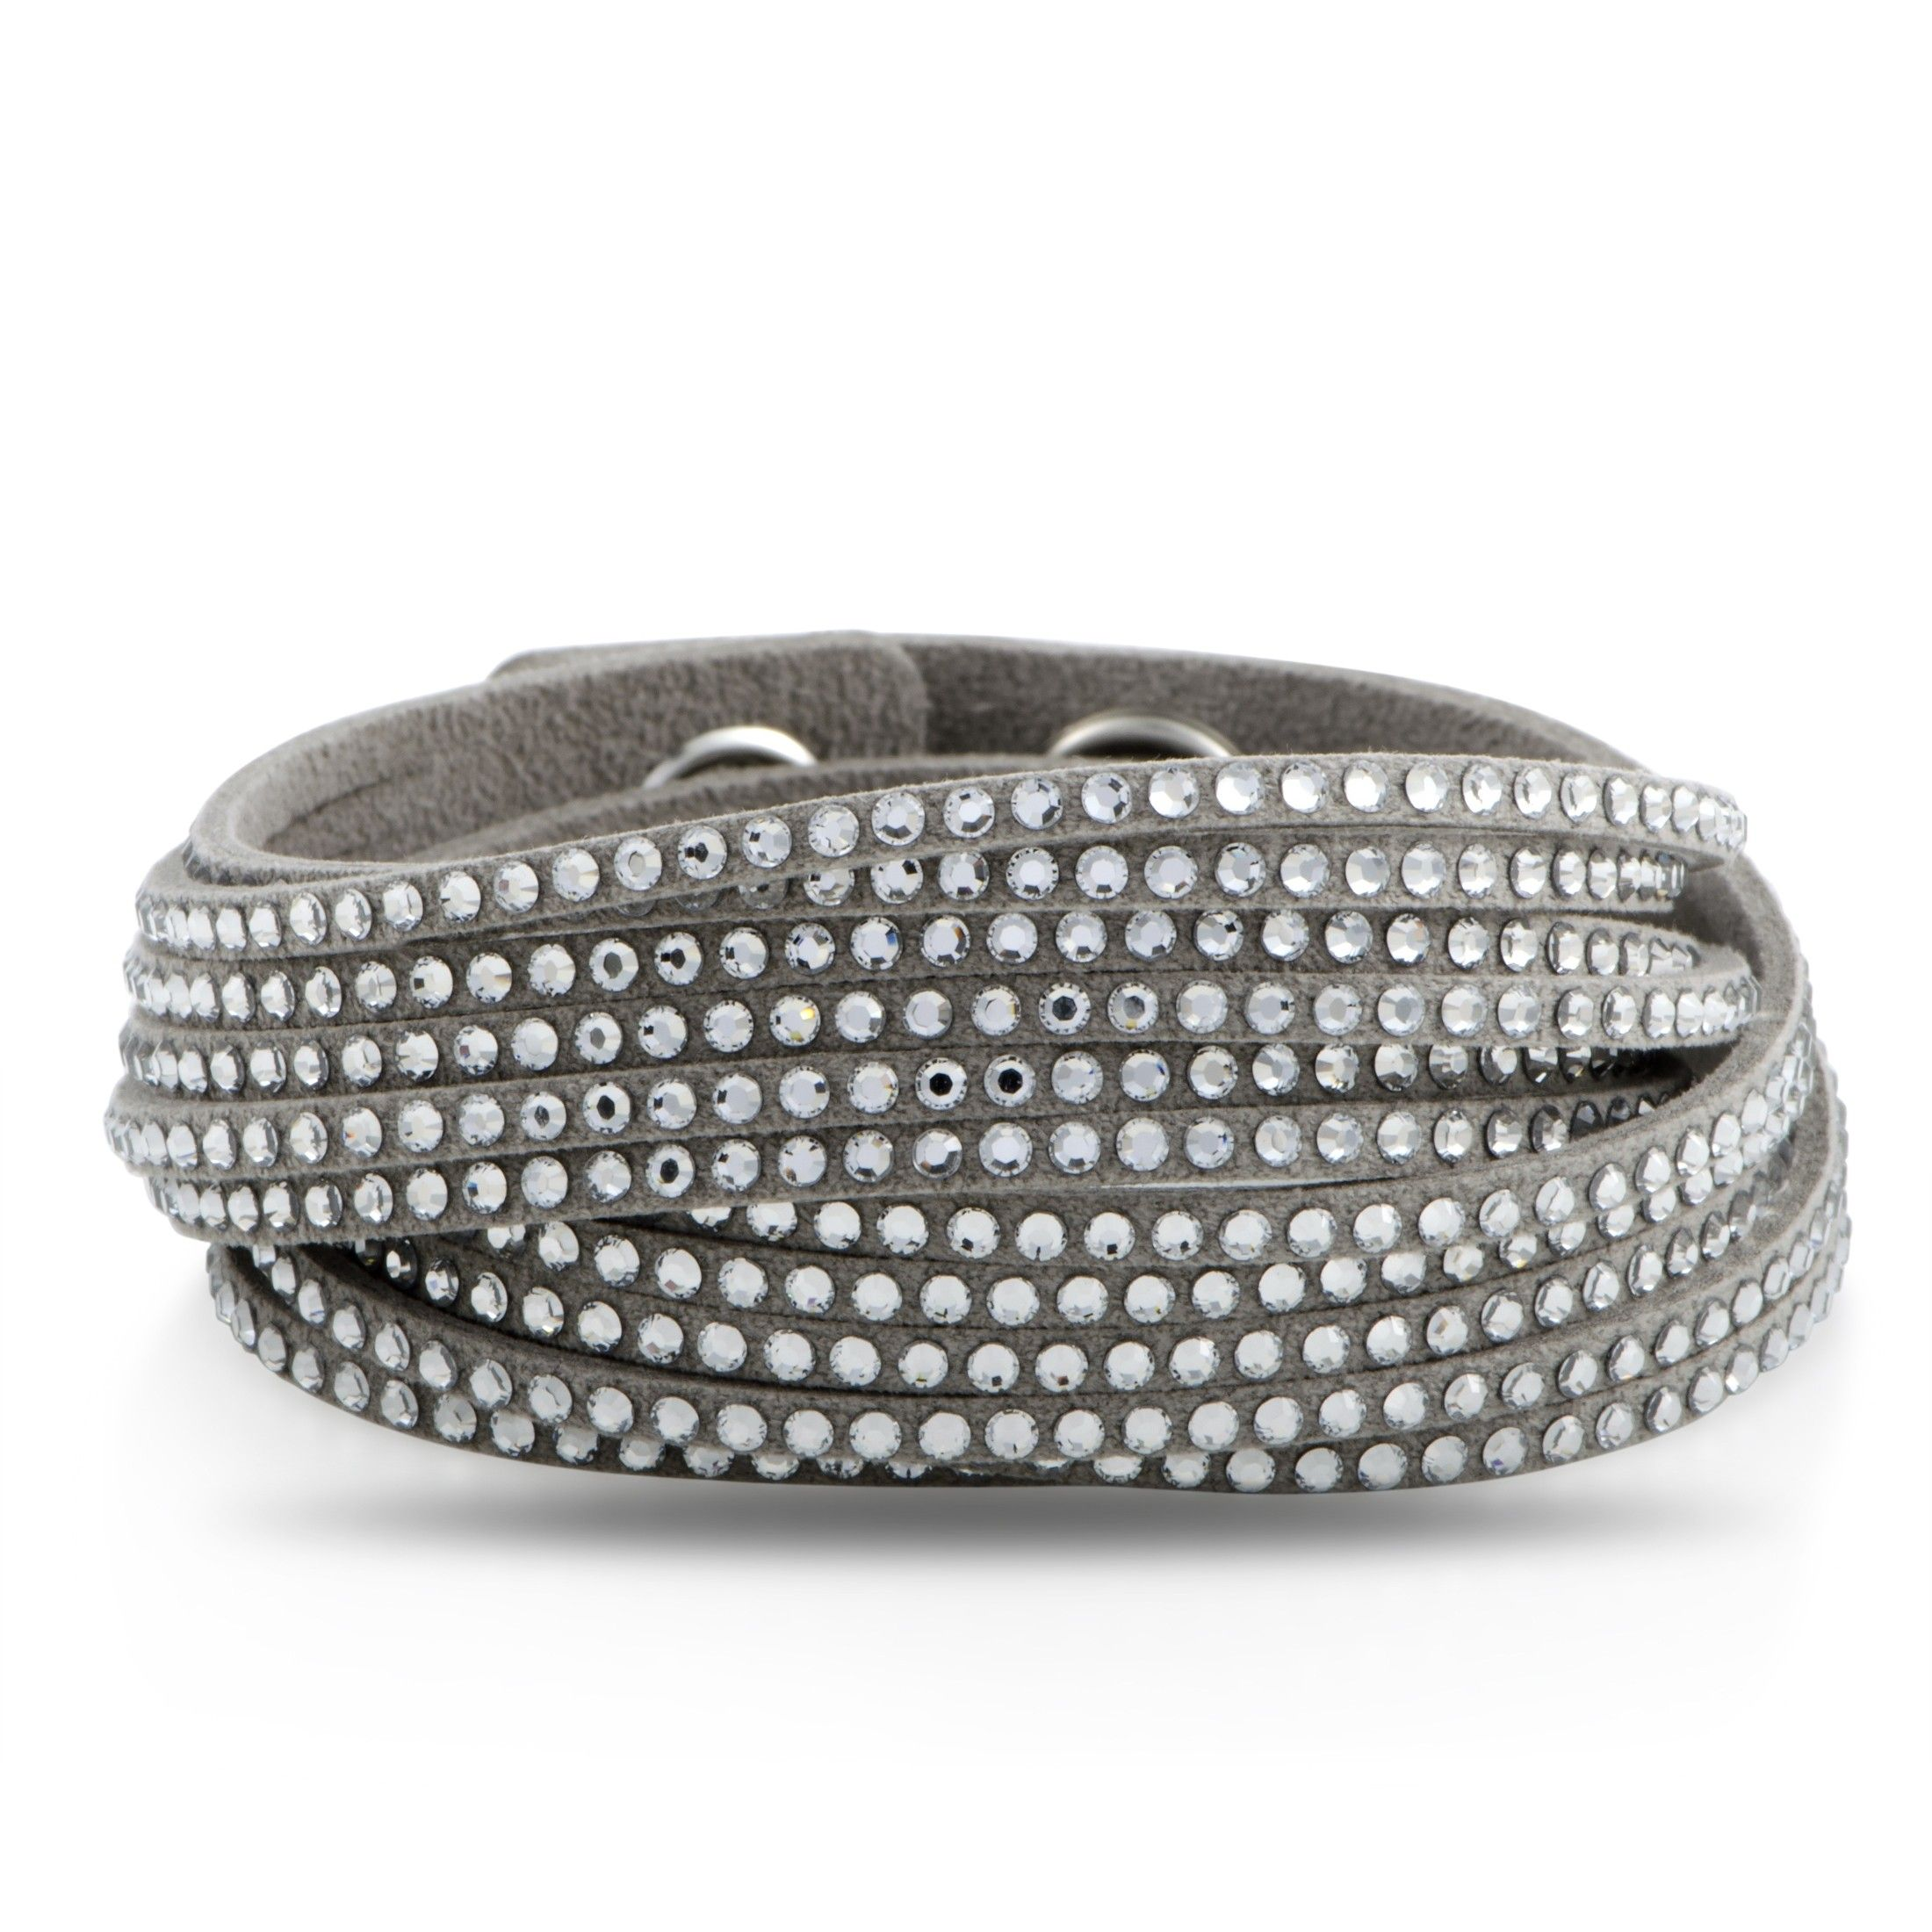 Swarovski Slake Grey 2 In 1 Suede Wrap Bracelet 5181989 M Medium